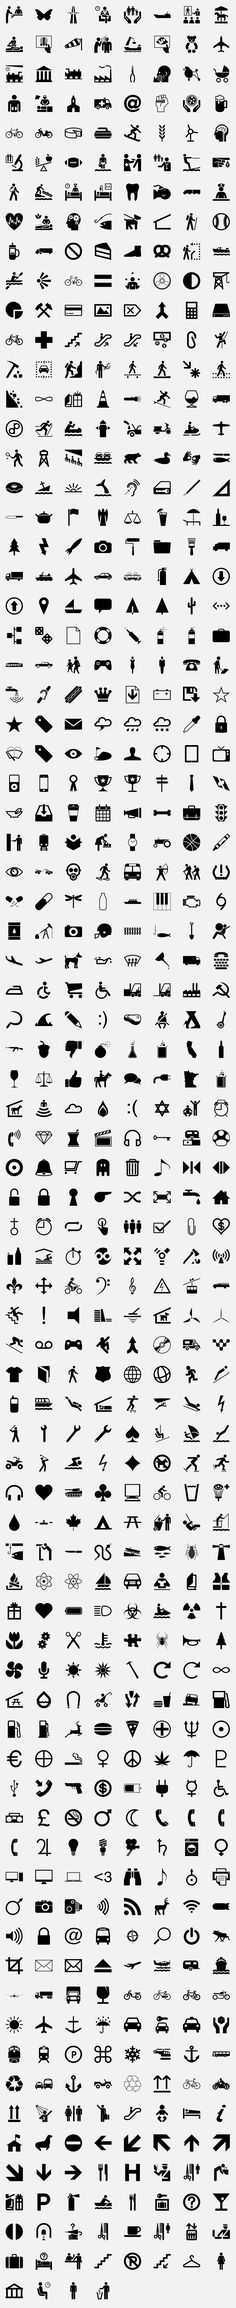 The Noun Project is a free, online symbol library of the world's visual language that can be understood by all cultures and all people.